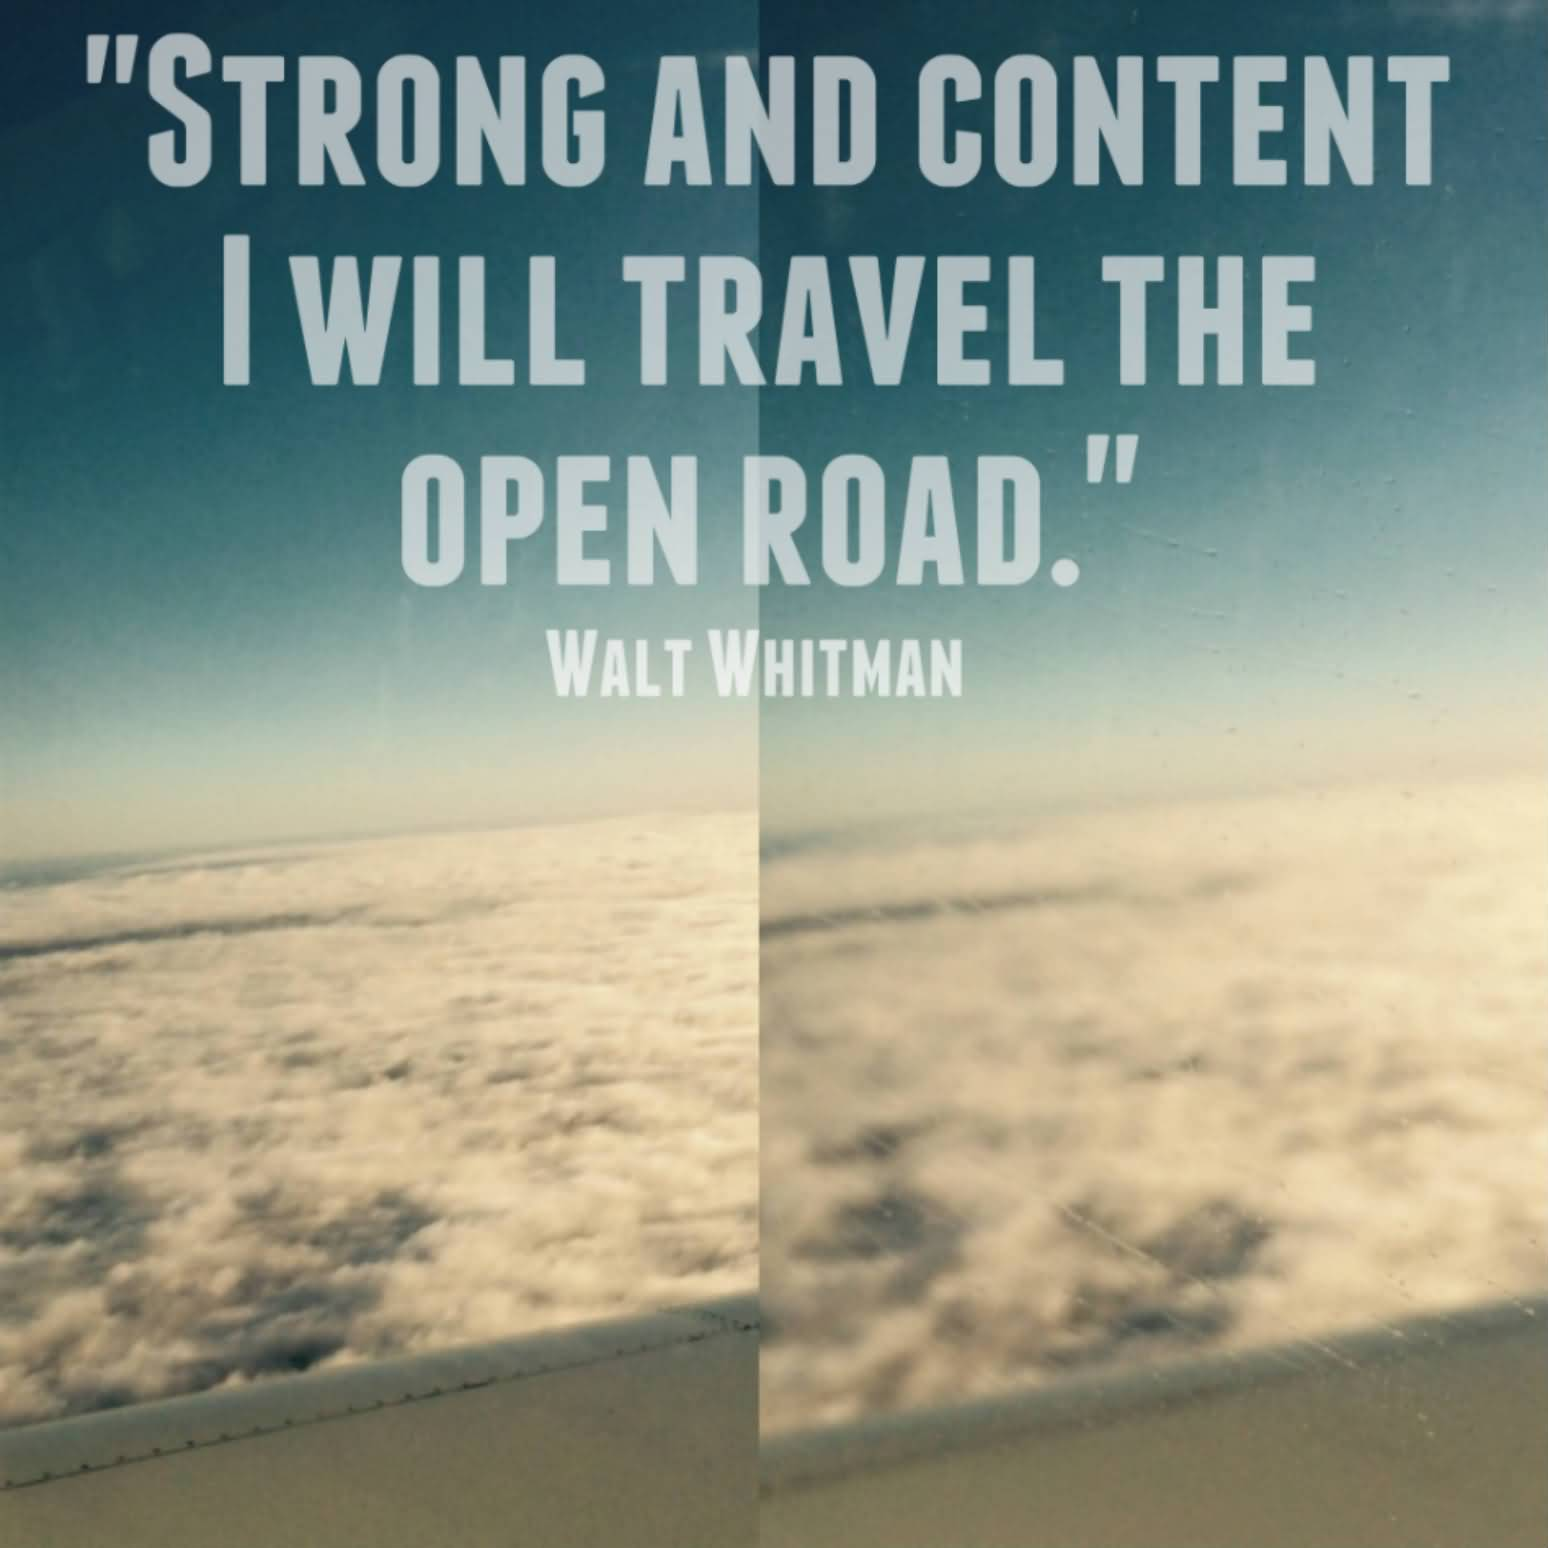 Thrill Sayings strong and content i will travel the open road